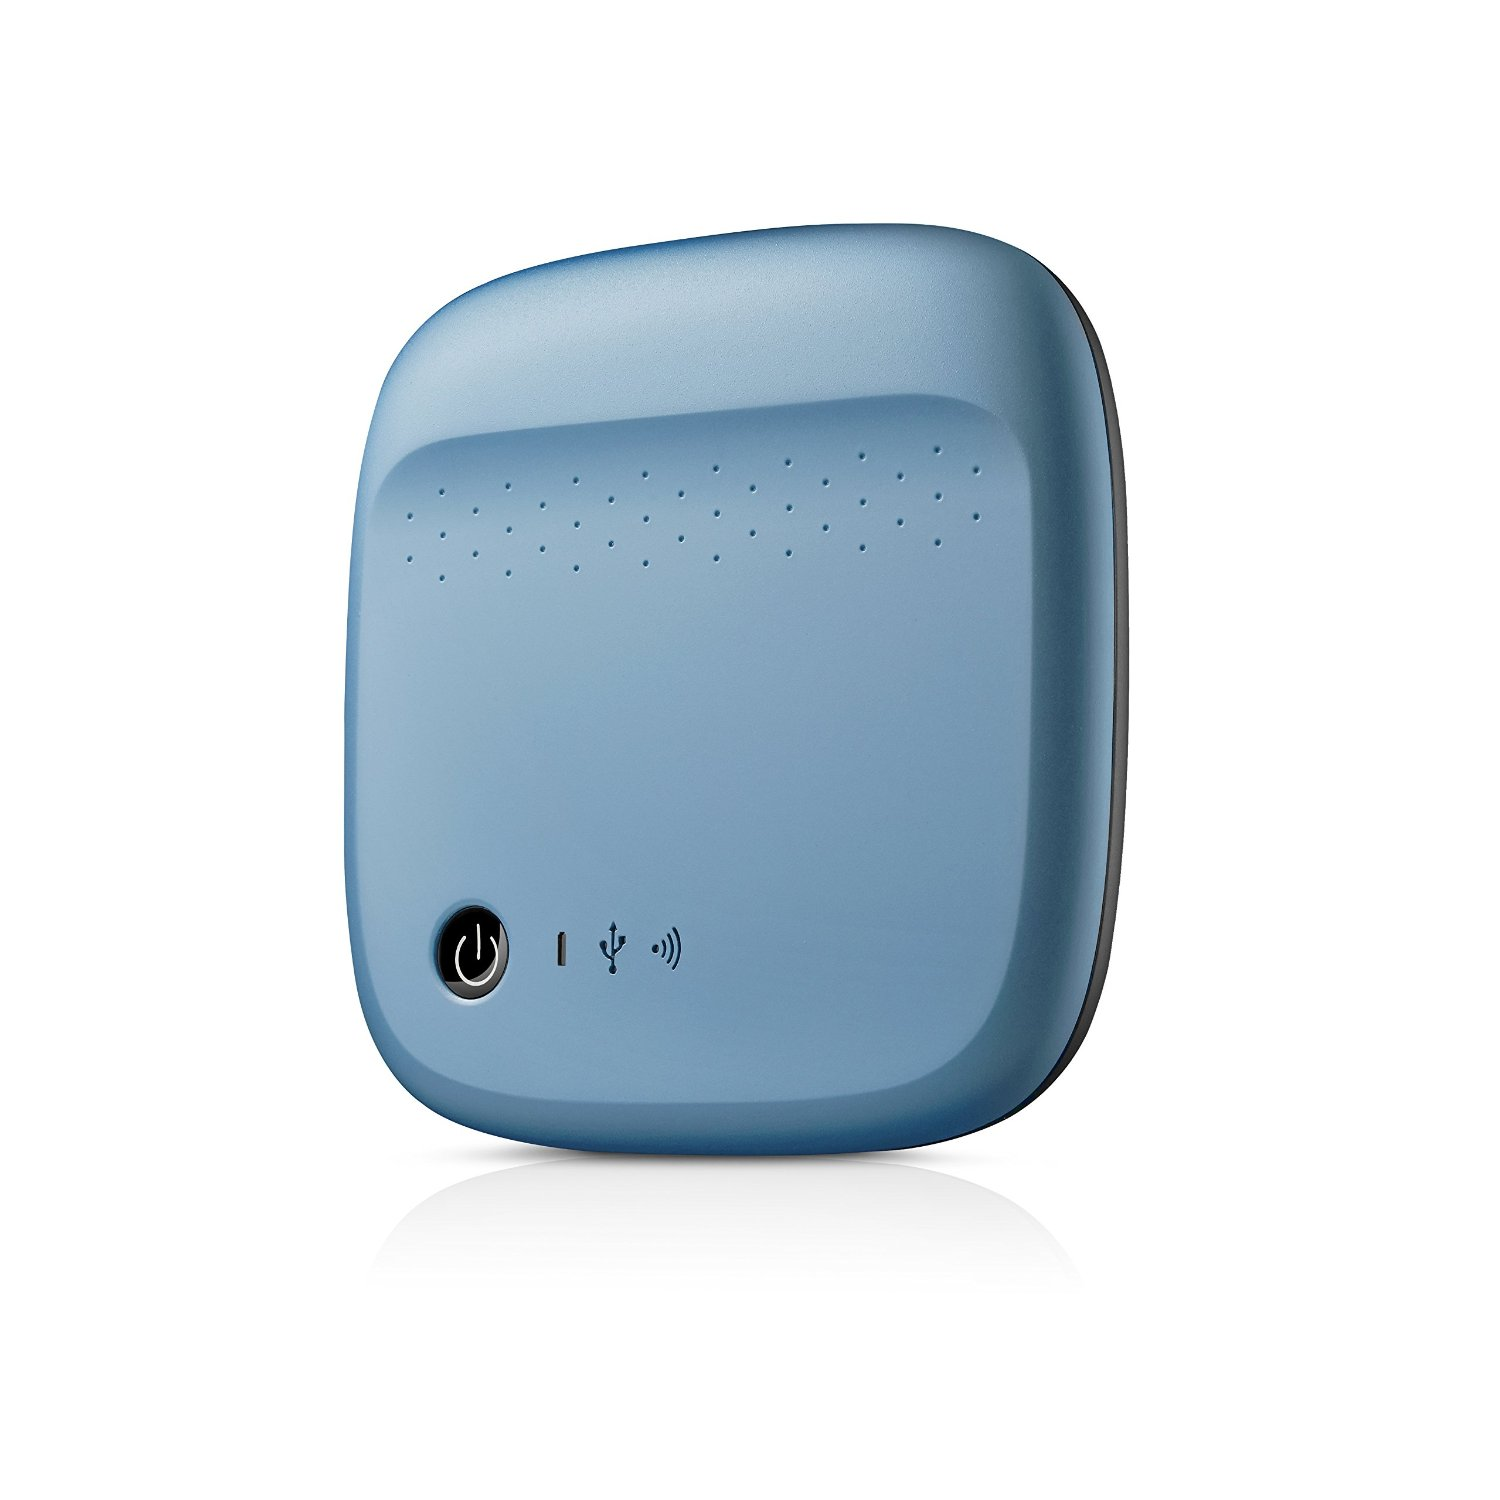 Amazon - Buy Seagate Wireless Mobile Portable Hard Drive Storage 500GB (Blue) at Rs 4,299 only